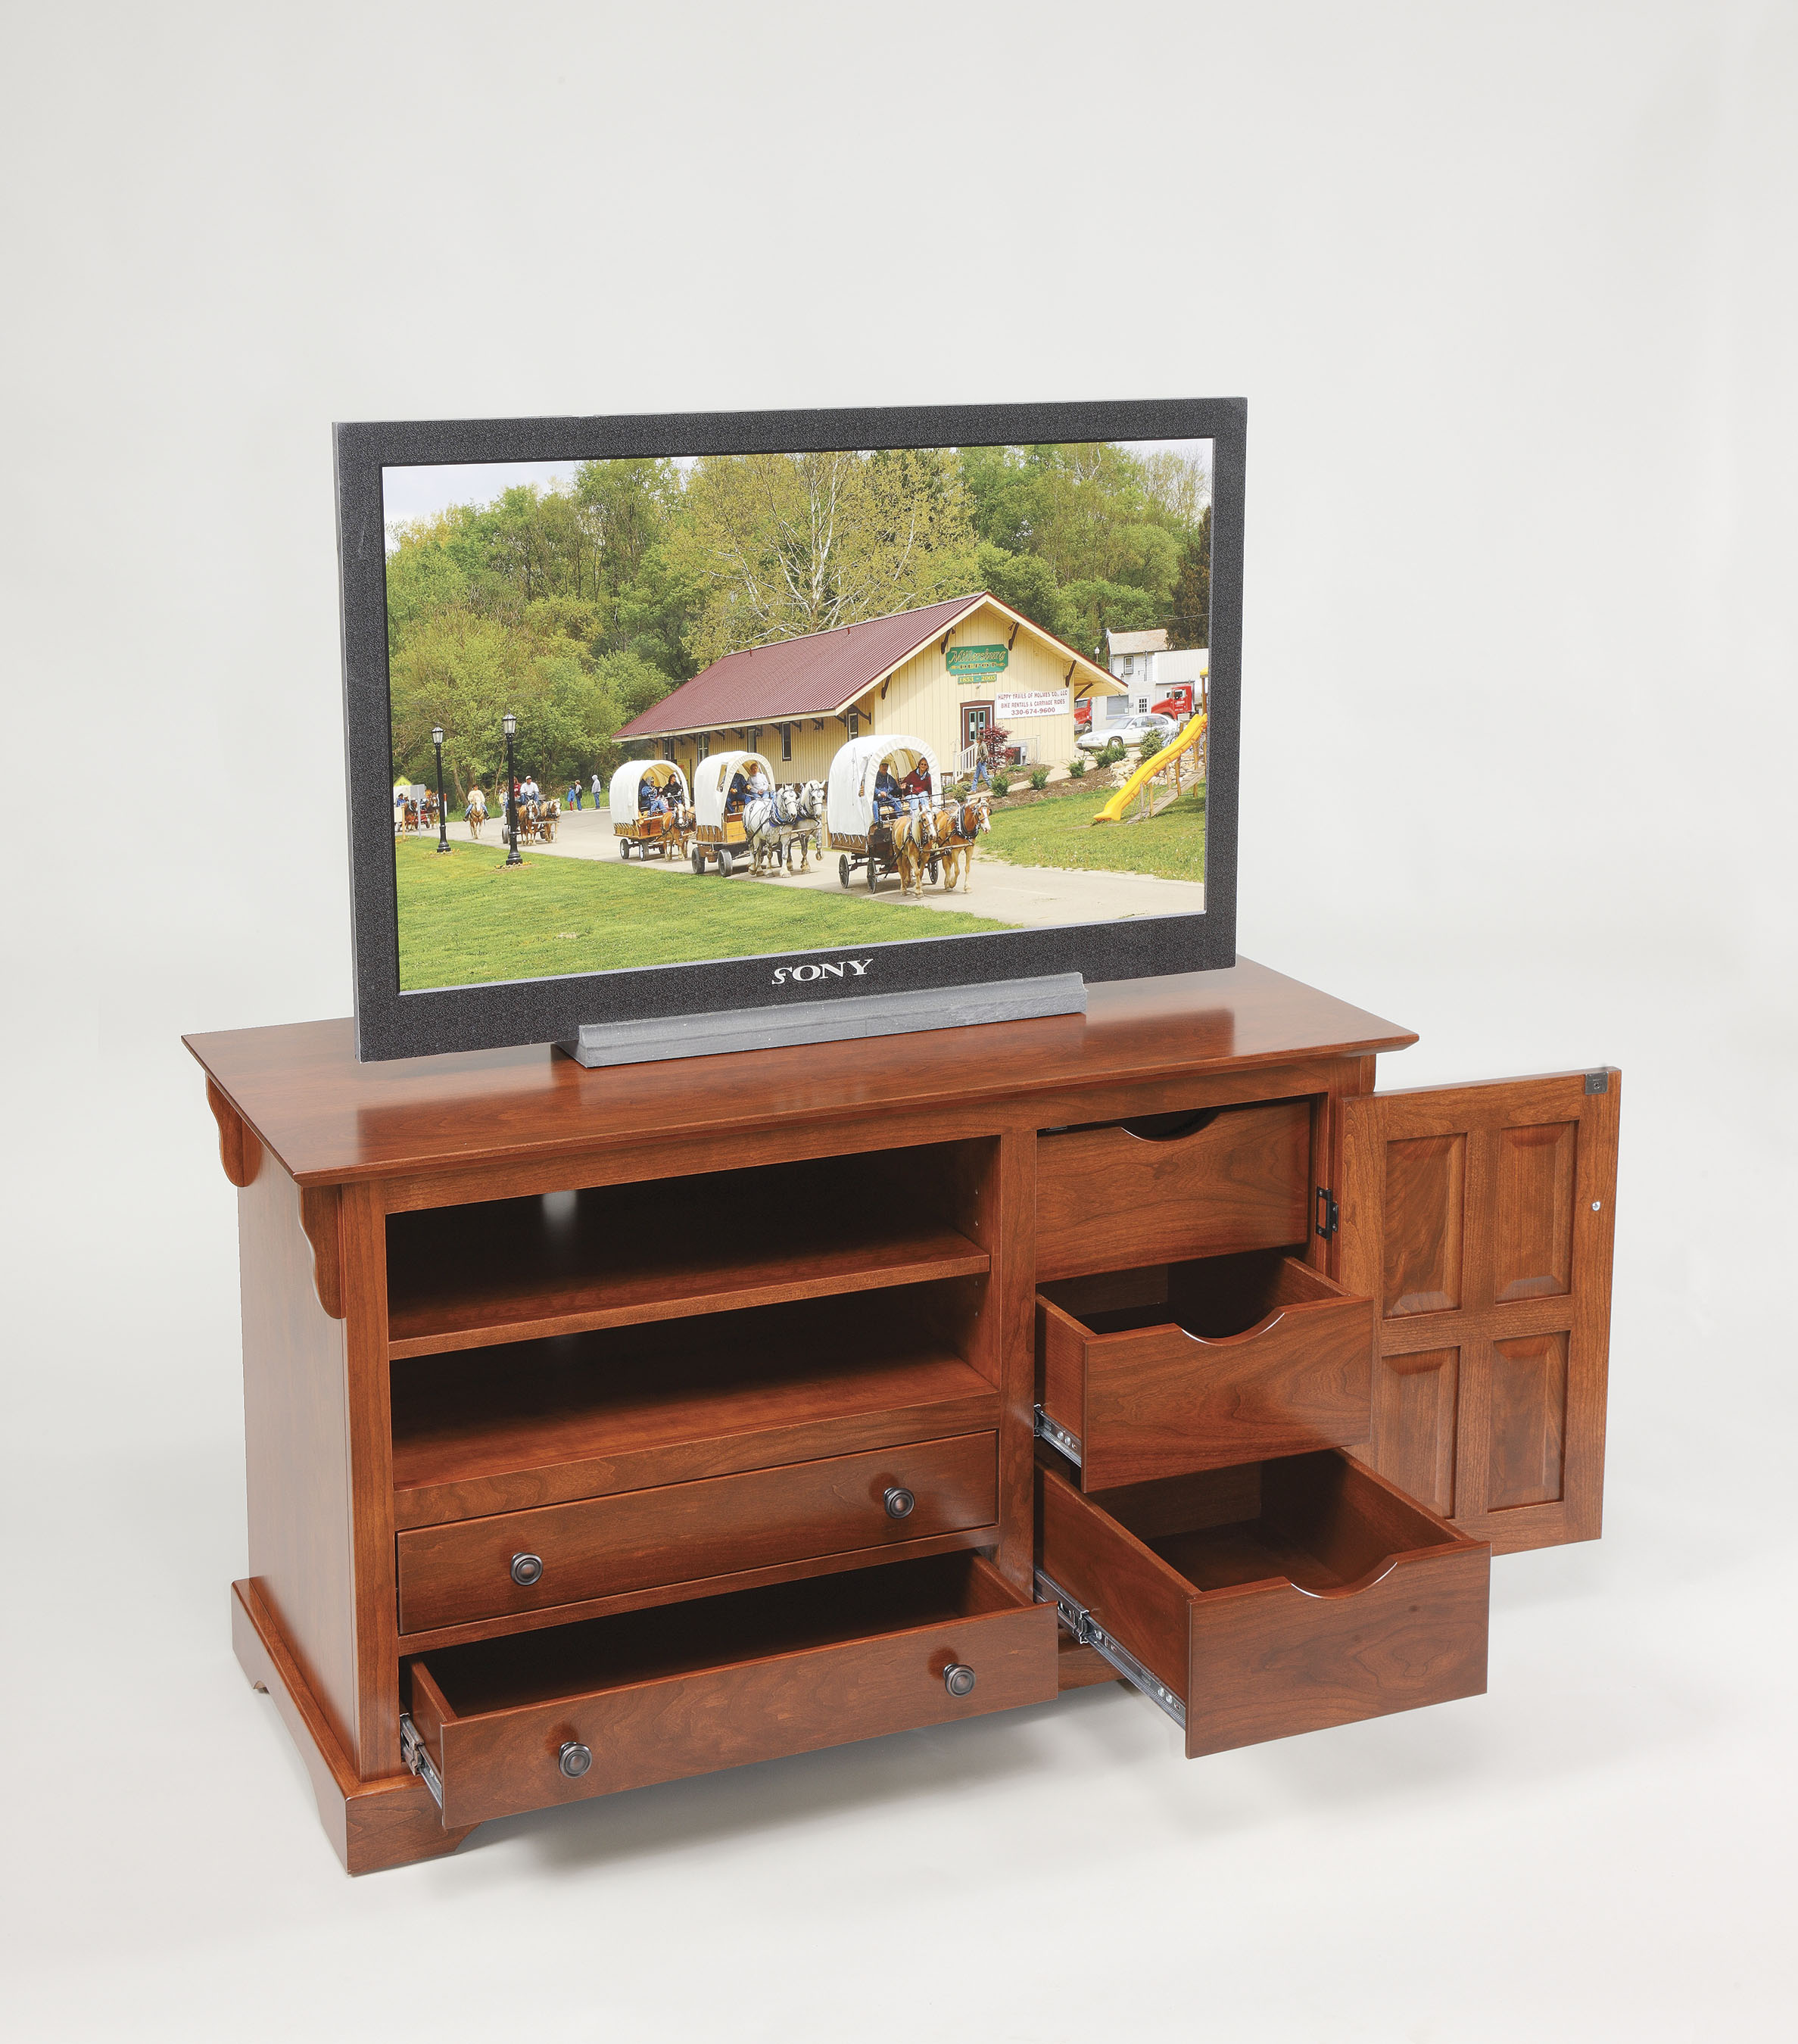 Handcrafted Amish Furniture 28 Images Amish Peddler Custom Handcrafted Amish Furniture